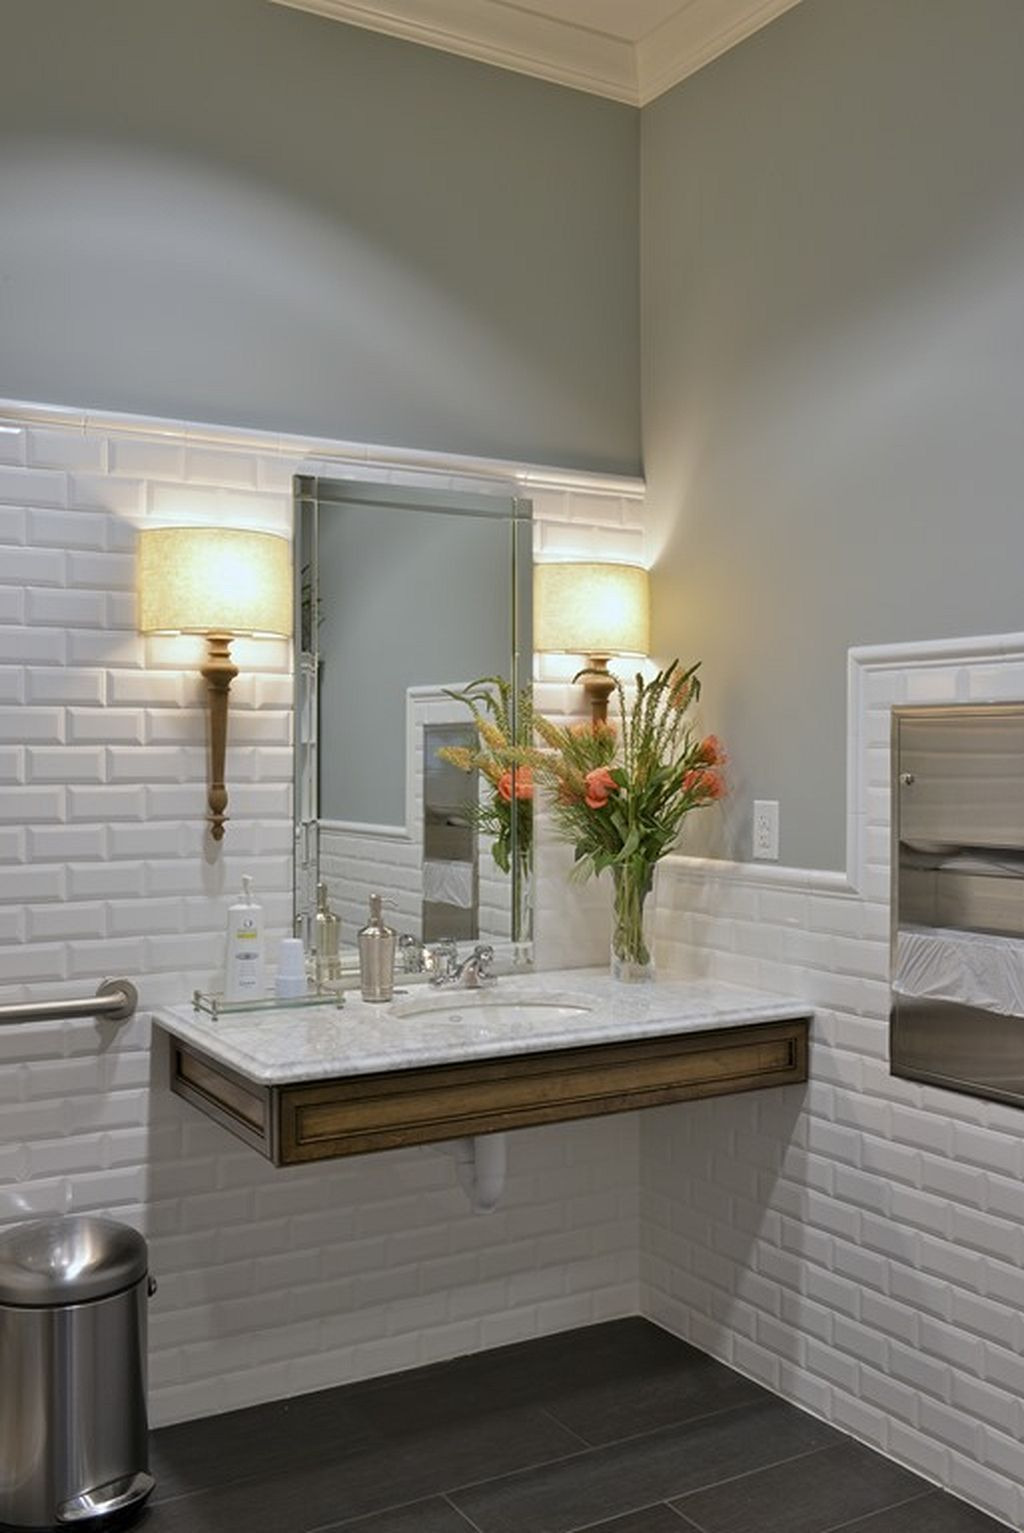 Office Bathroom Decorating Ideas Awesome Fice Bathroom Decorating Ideas In 2020